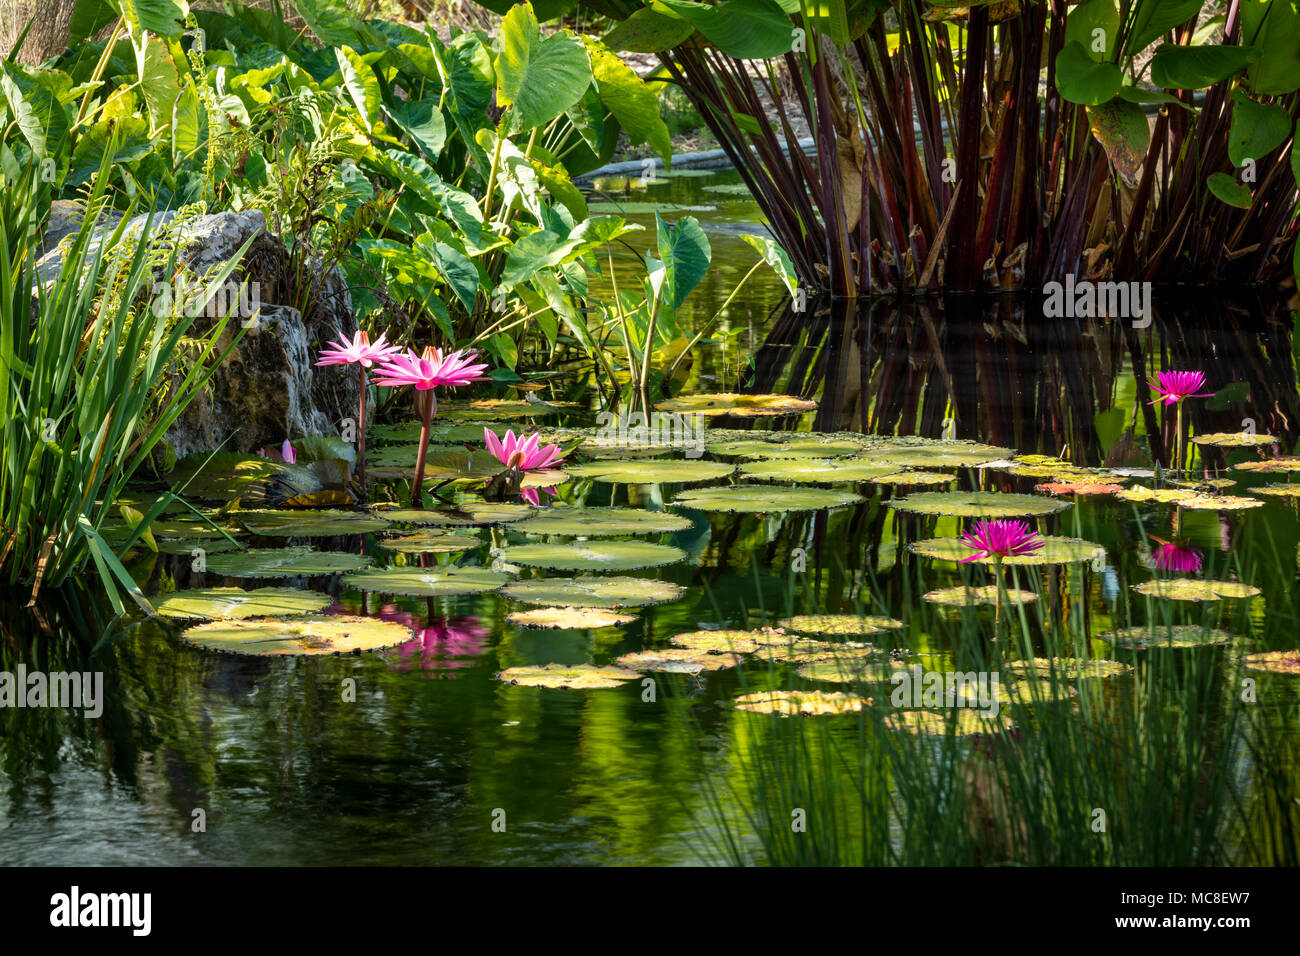 Nymphaeaceae - water lilies in pond at Naples Botanical Gardens, Naples, Florida, USA - Stock Image